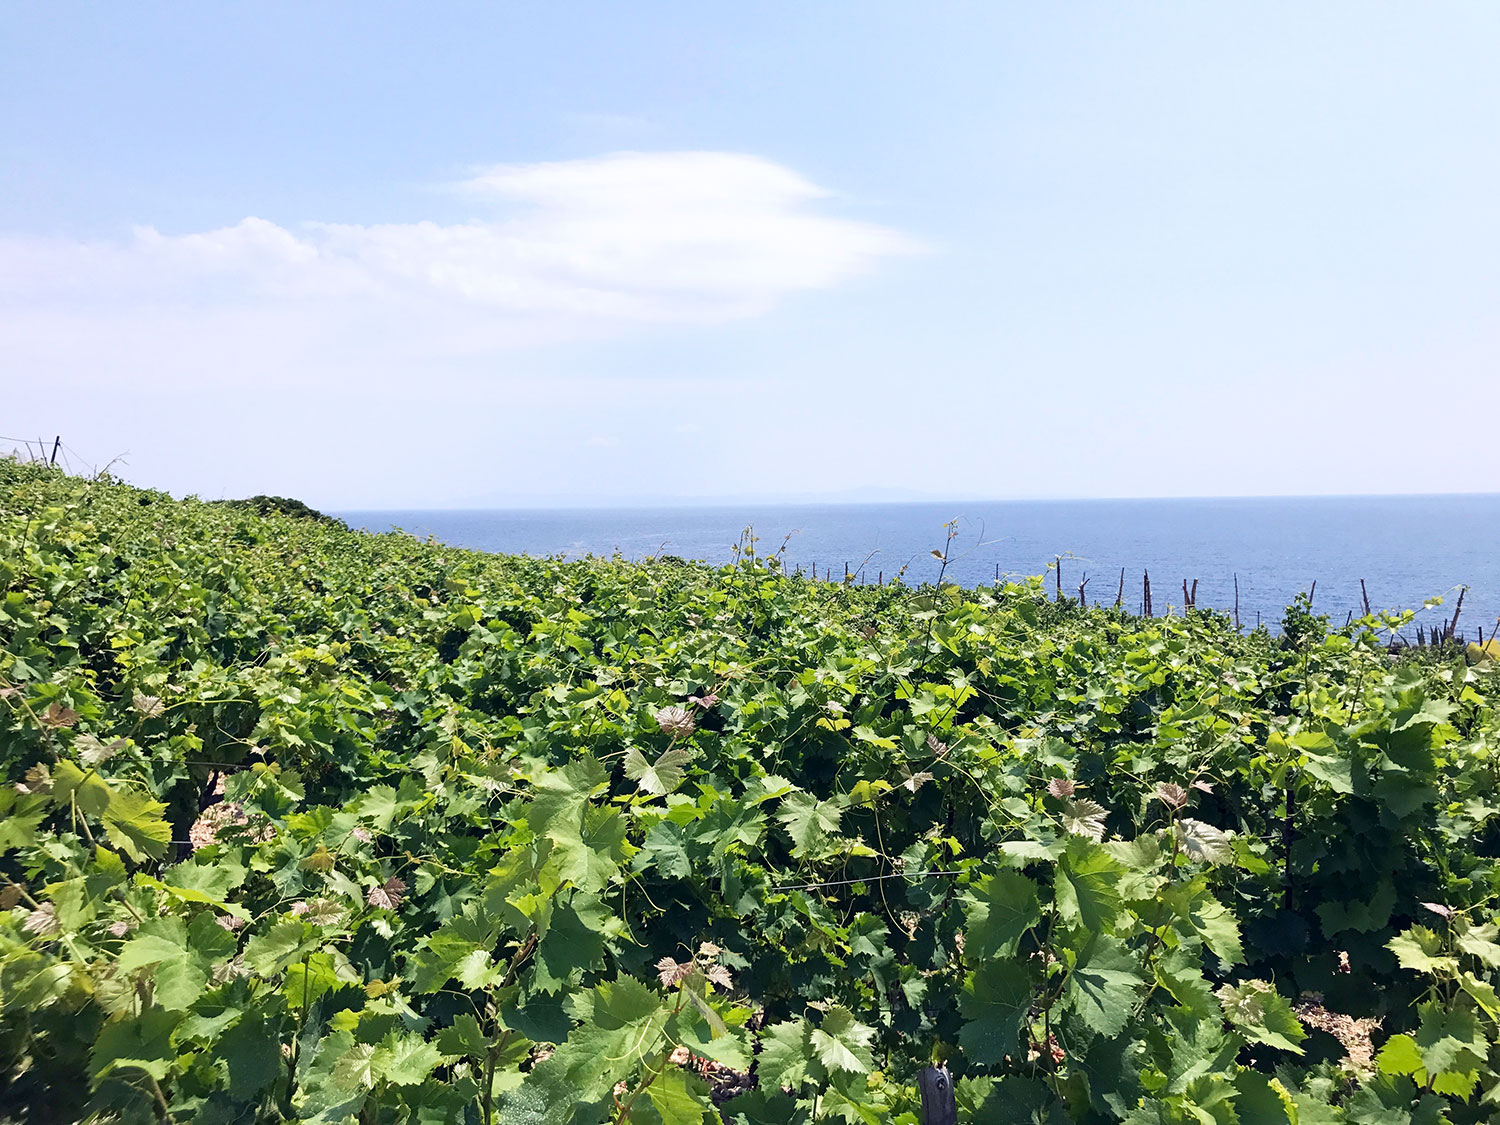 Vineyard overlooking the Adriatic Sea